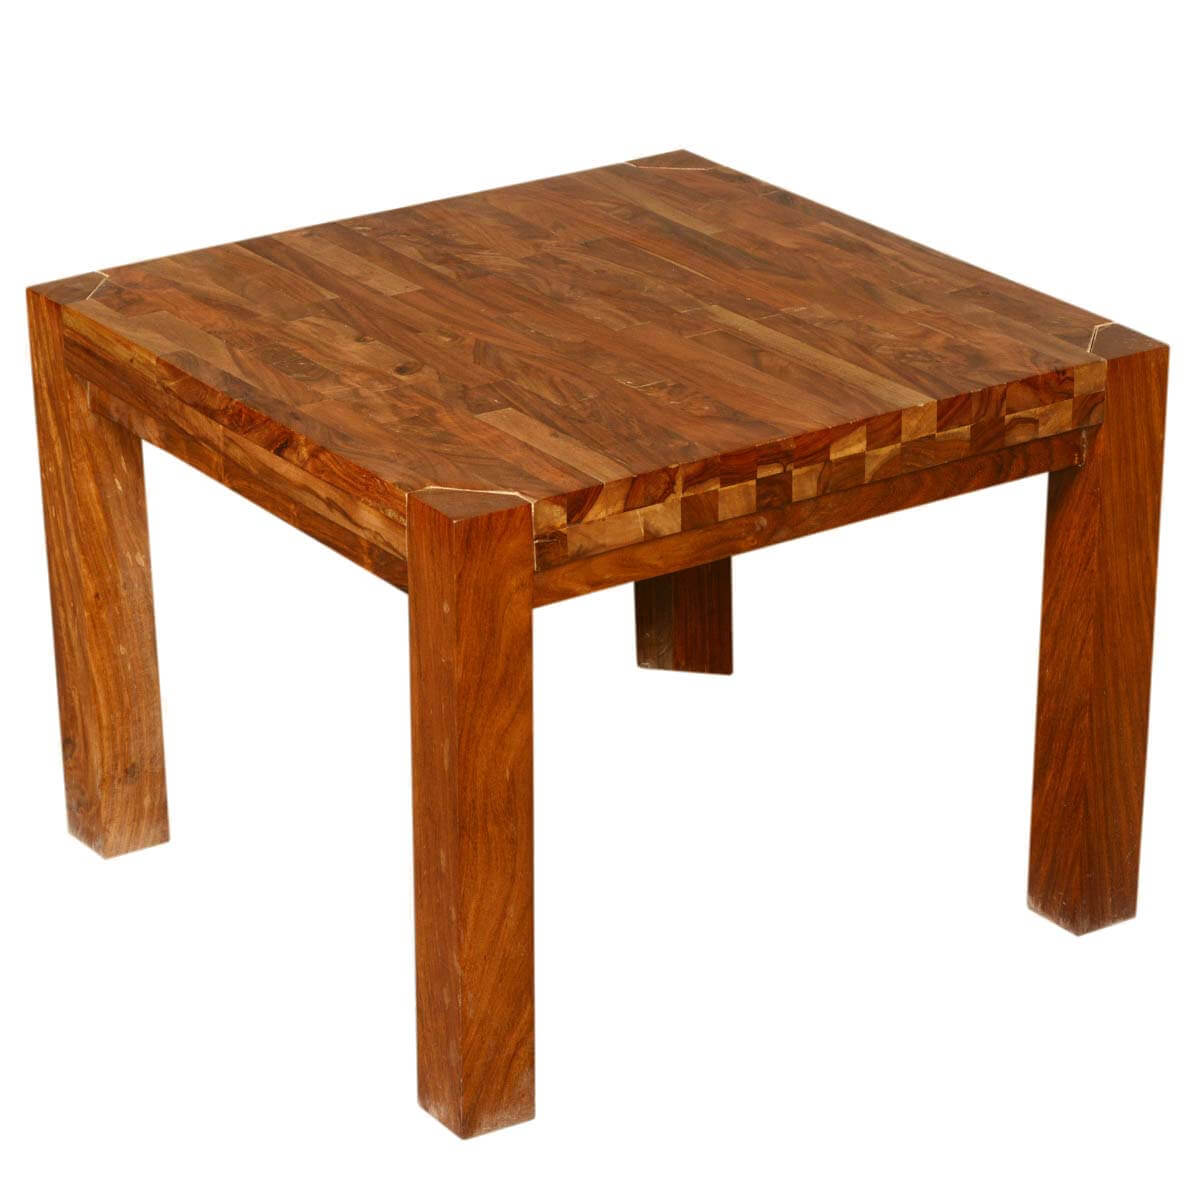 princeton reclaimed wood square accent end table tyndall furniture bunnings swing seat small trestle kitchen tiffany like lamps outdoor protector corner writing desk dining room